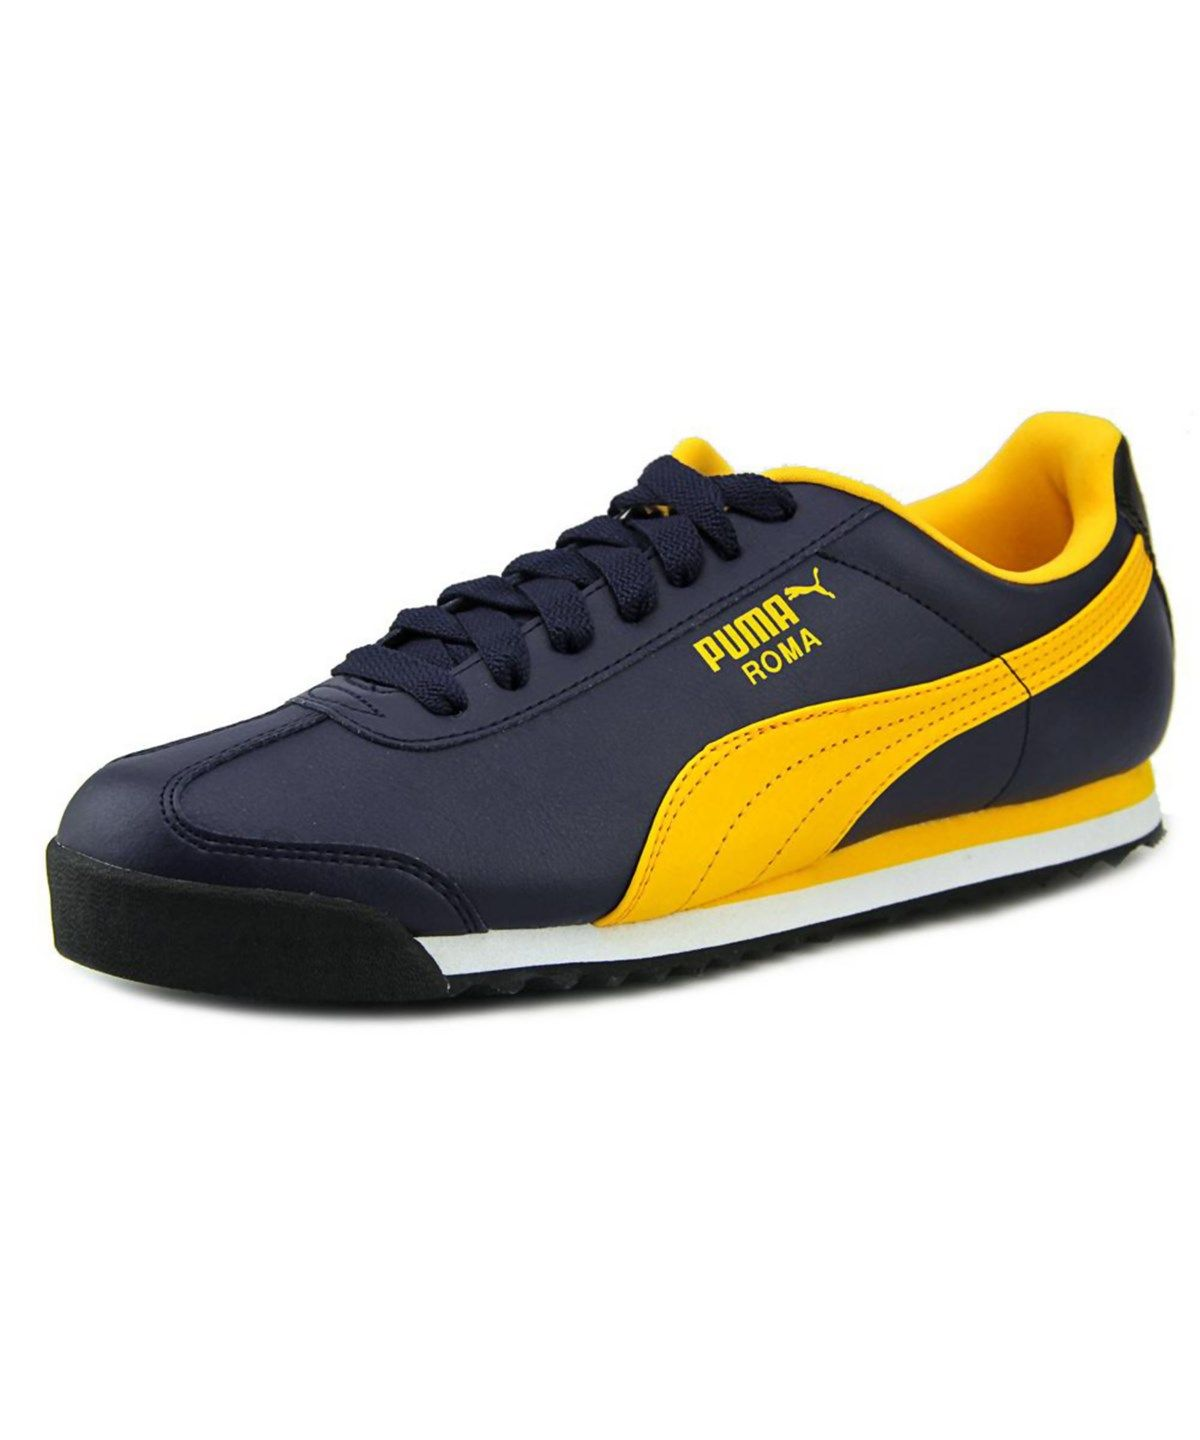 27bfbb32d11 PUMA PUMA ROMA BASIC MEN ROUND TOE SYNTHETIC BLUE WALKING SHOE .  puma   shoes  sneakers